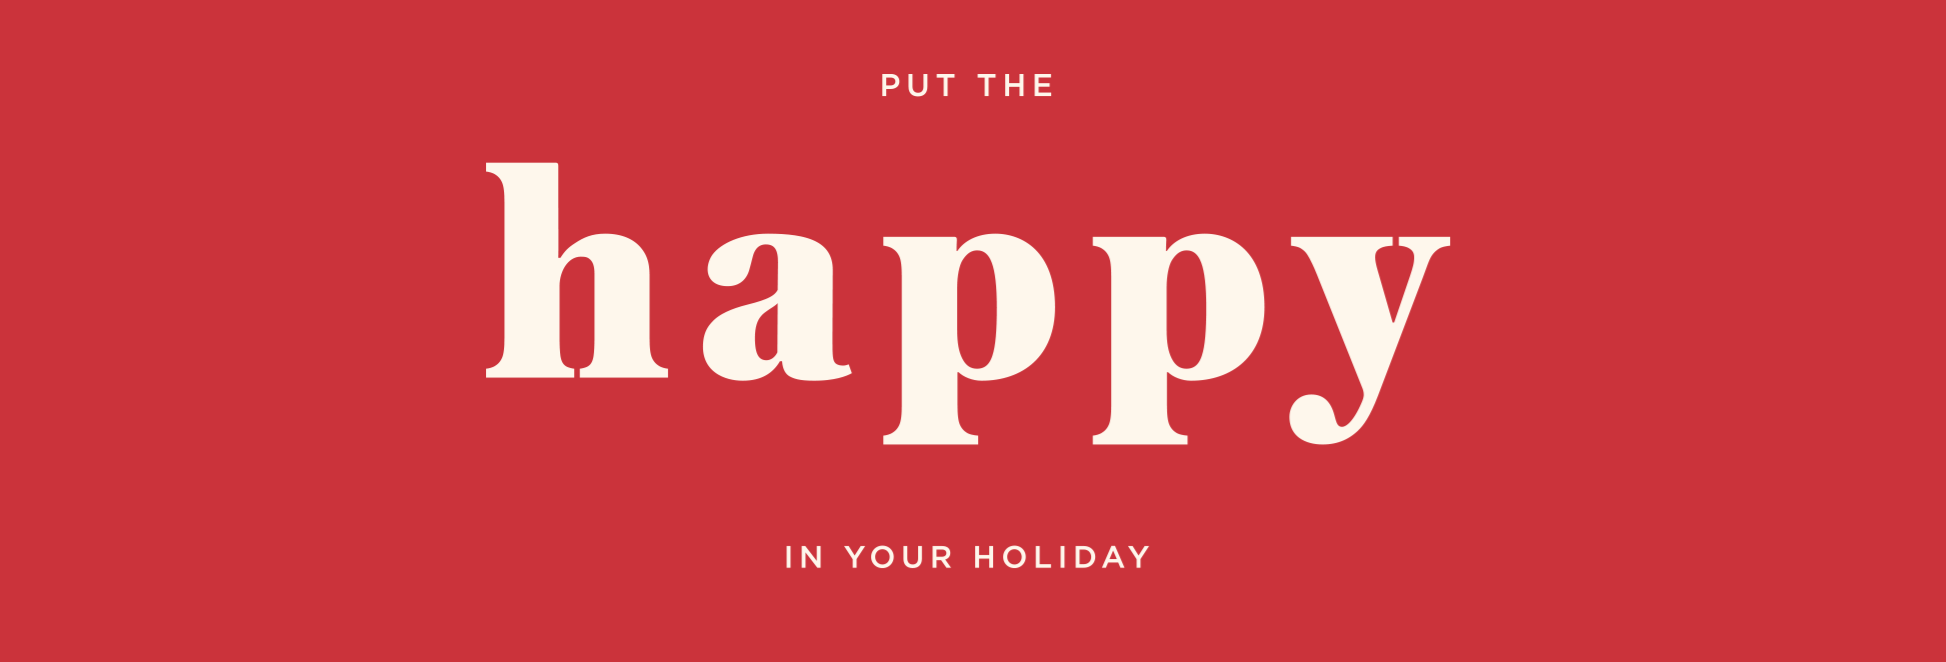 PUT HAPPY IN YOUR HOLIDAY